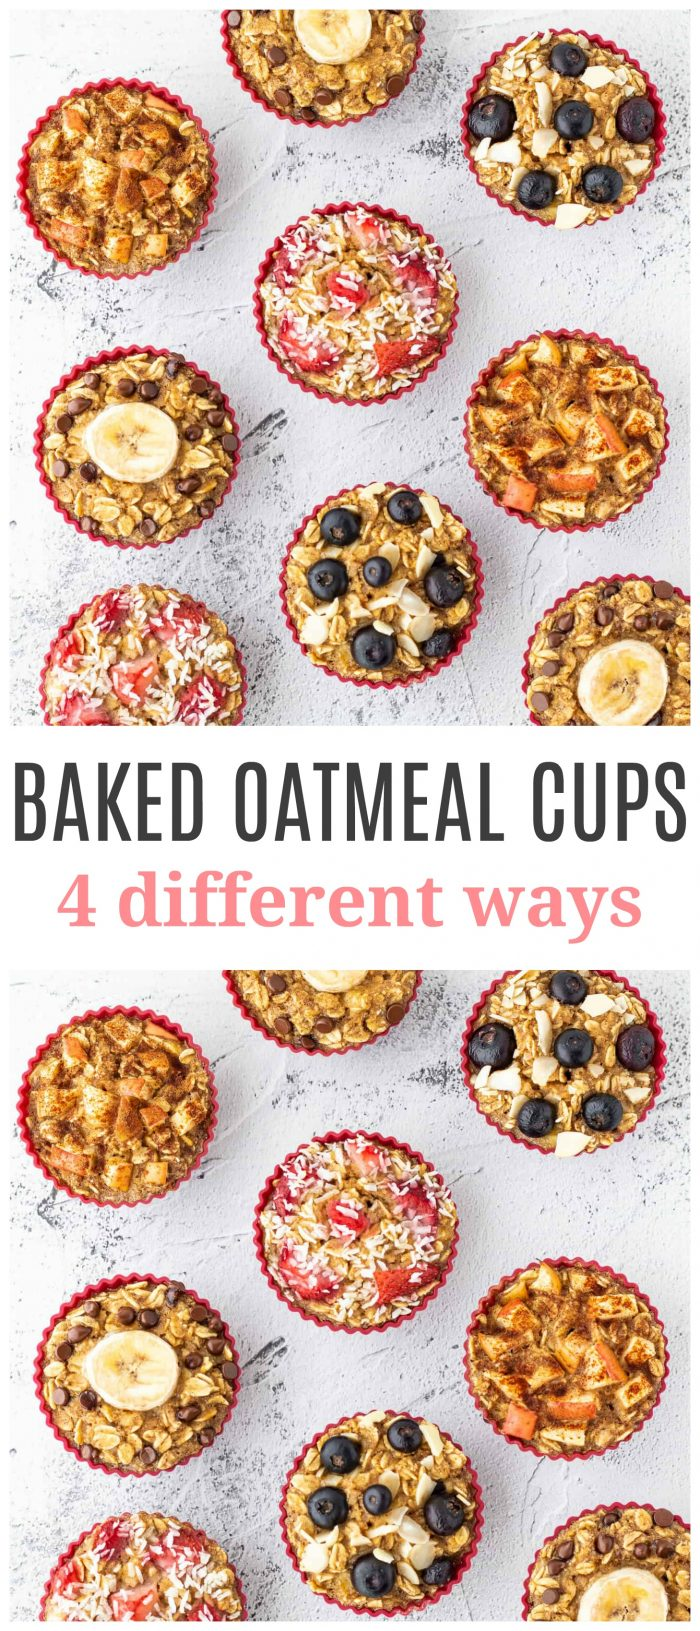 These healthy oatmeal muffins are a fun and easy make-ahead breakfast option that are flourless and totally customizable! Try out the four different flavours provided or add your own unique spin! Best baked oatmeal cups ever! {gluten-free, dairy-free & vegetarian}